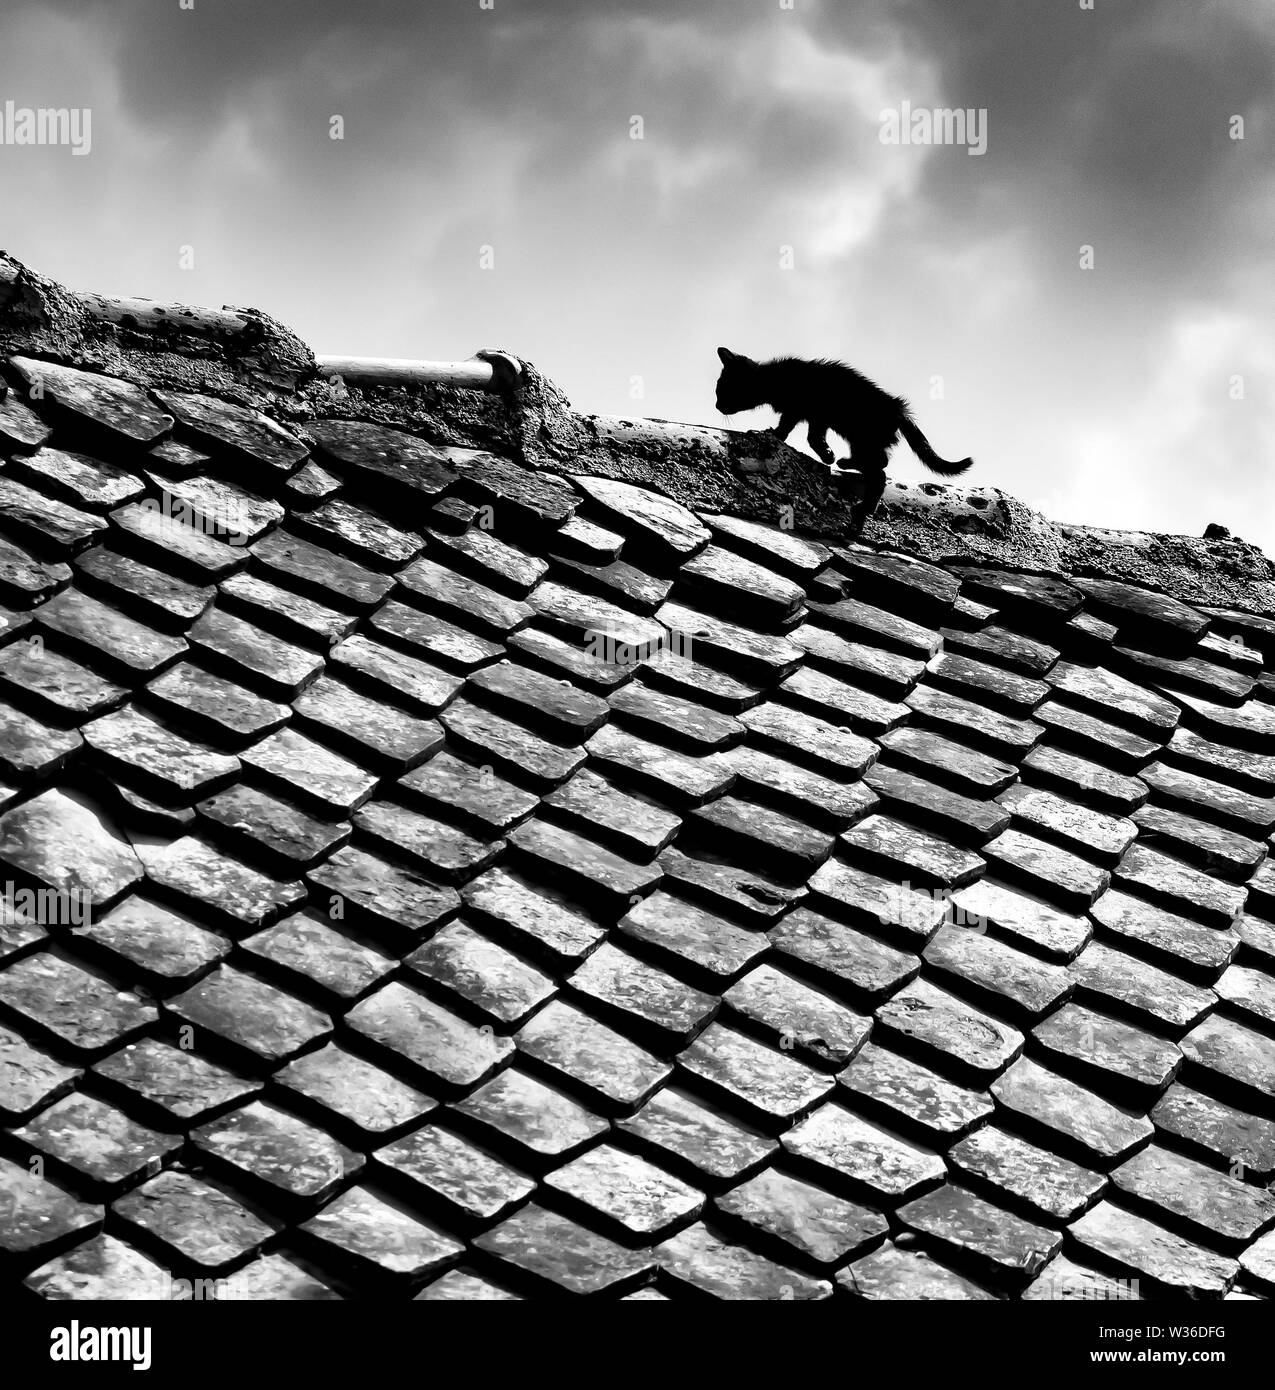 A black and white photograph of a black alley kitten walking on a shingle rooftop on a cloudy day. - Stock Image